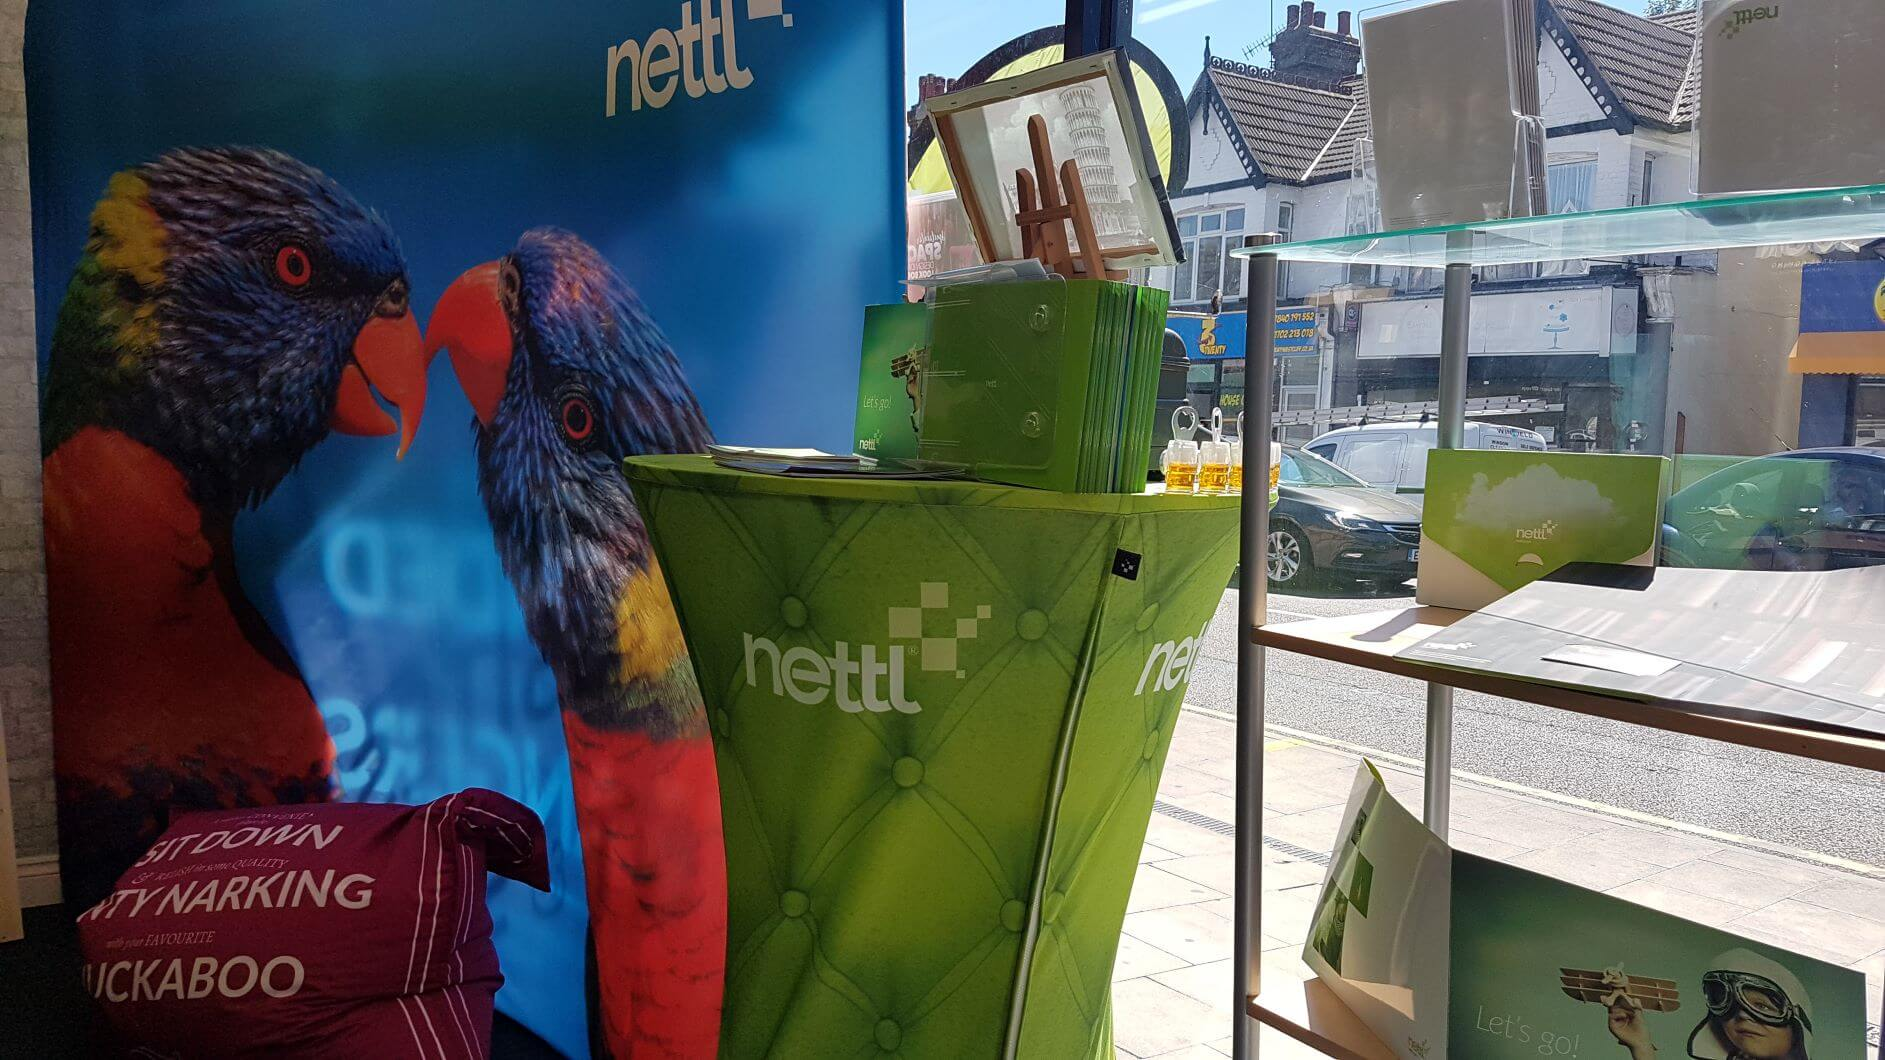 Nettl window